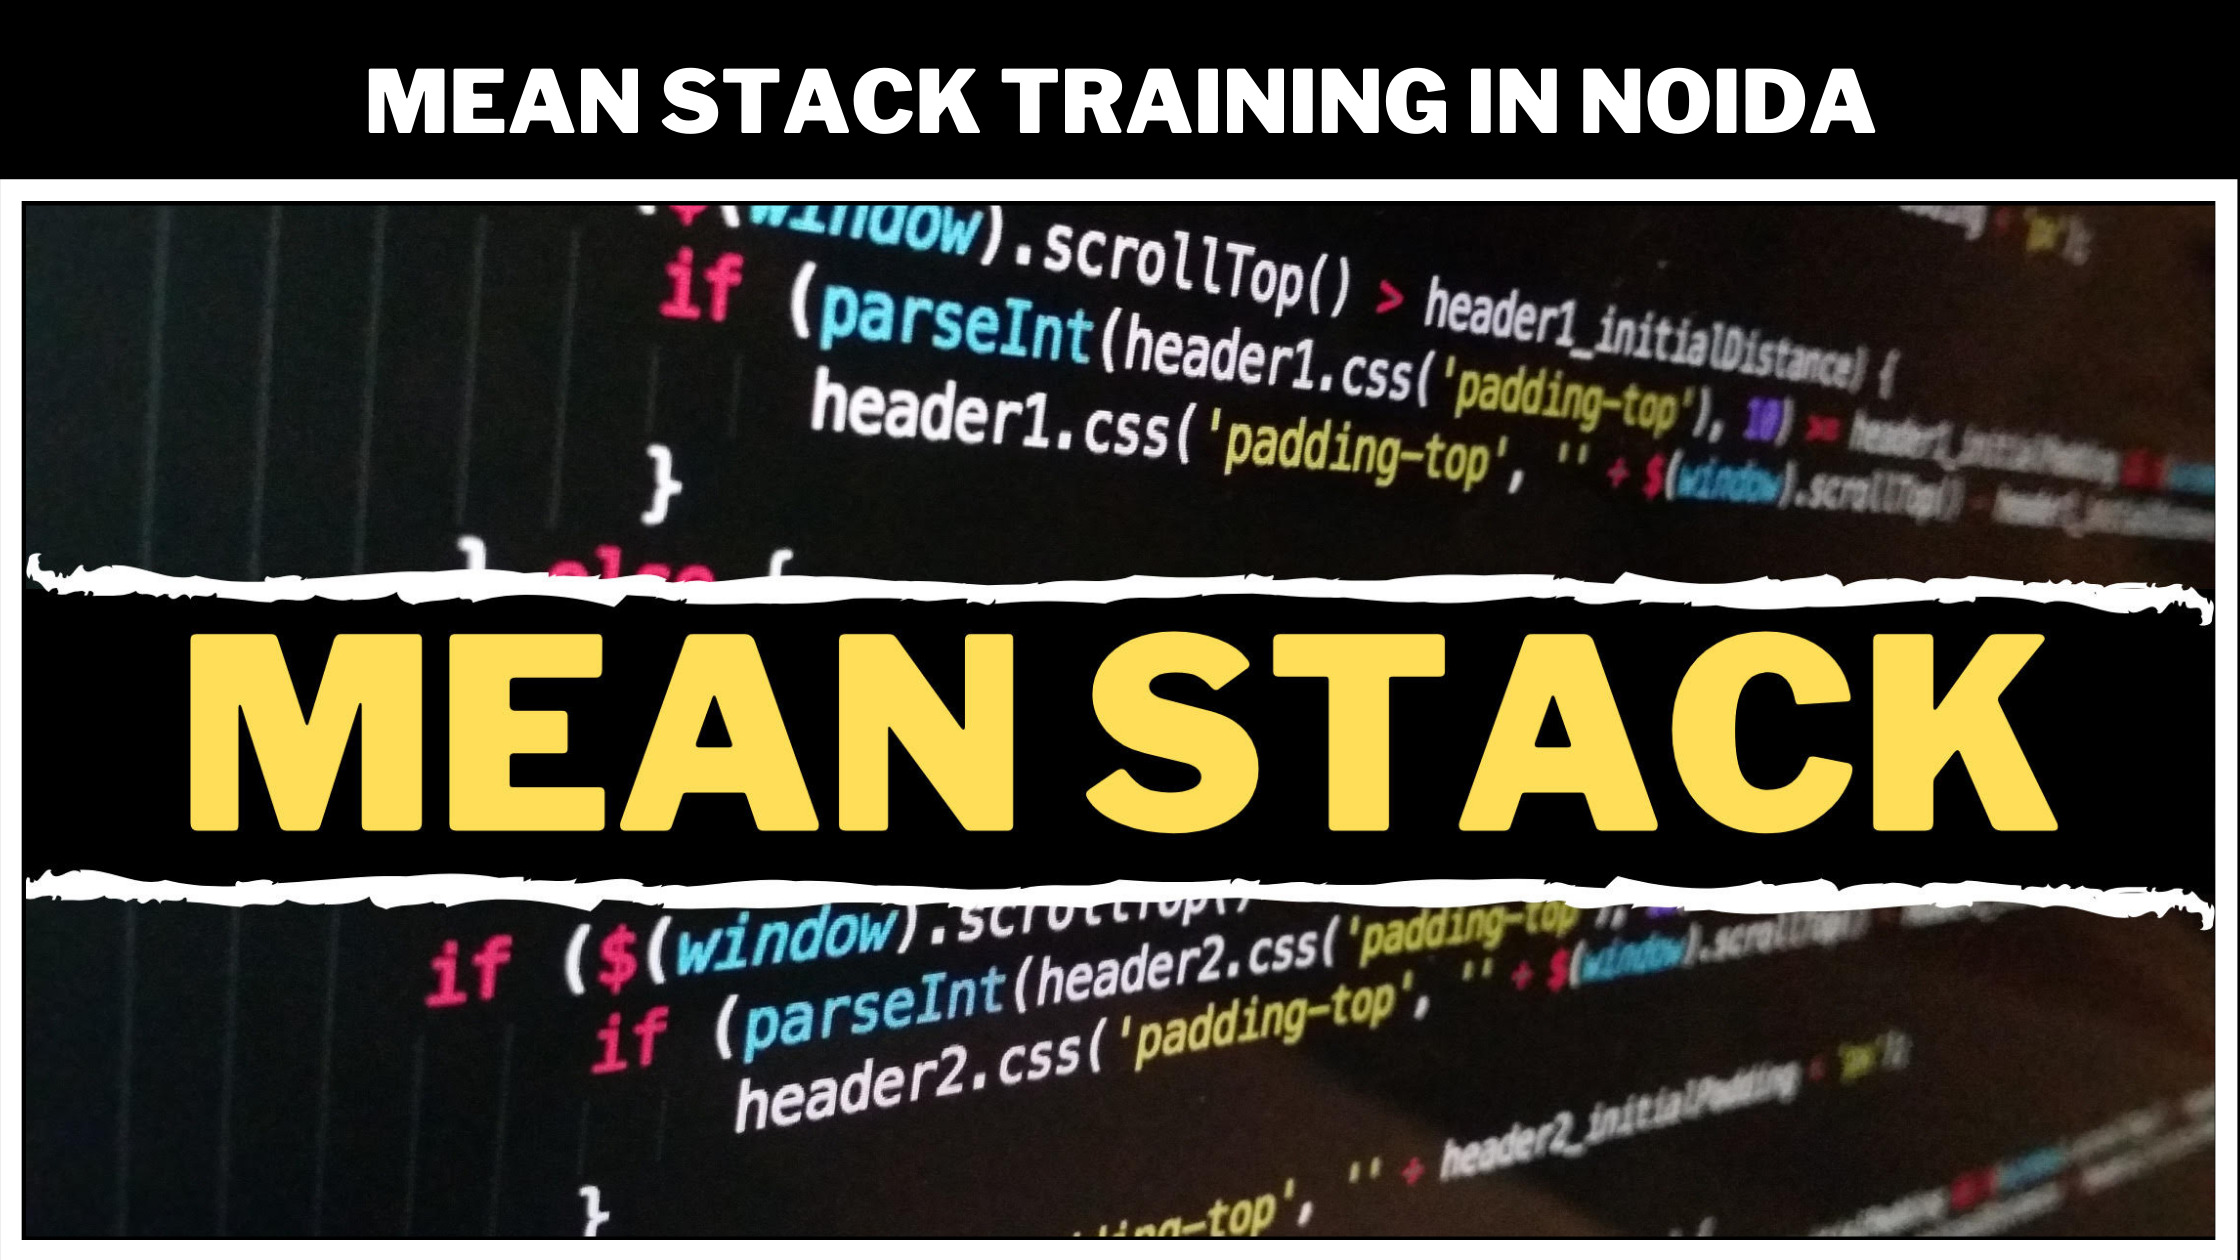 mean_stack_training_in_noida-background.jpeg